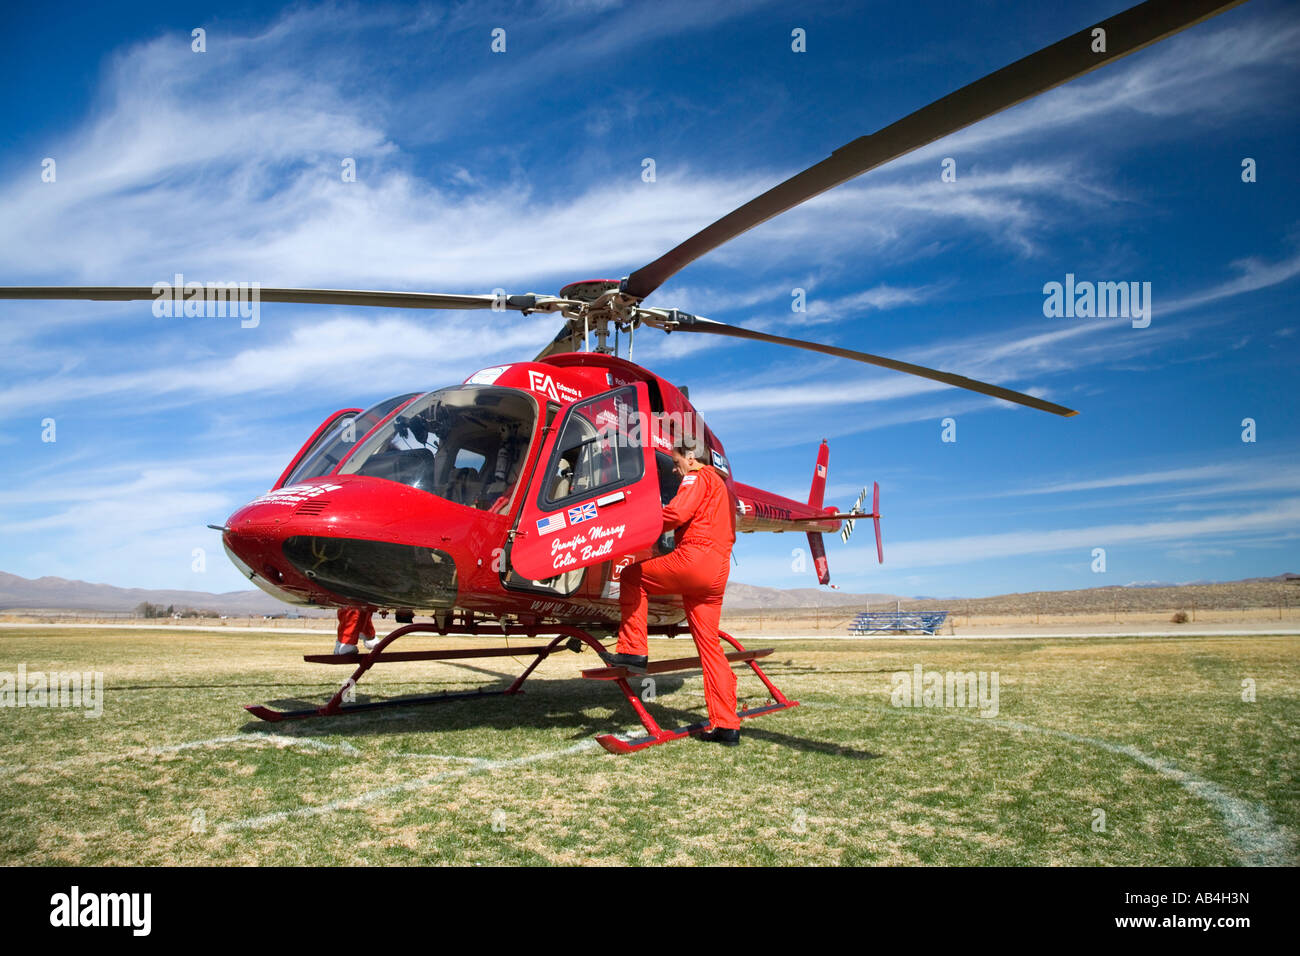 Bell 407 Helicopter, Pole to Pole, Polar First flight, Nevada - Stock Image